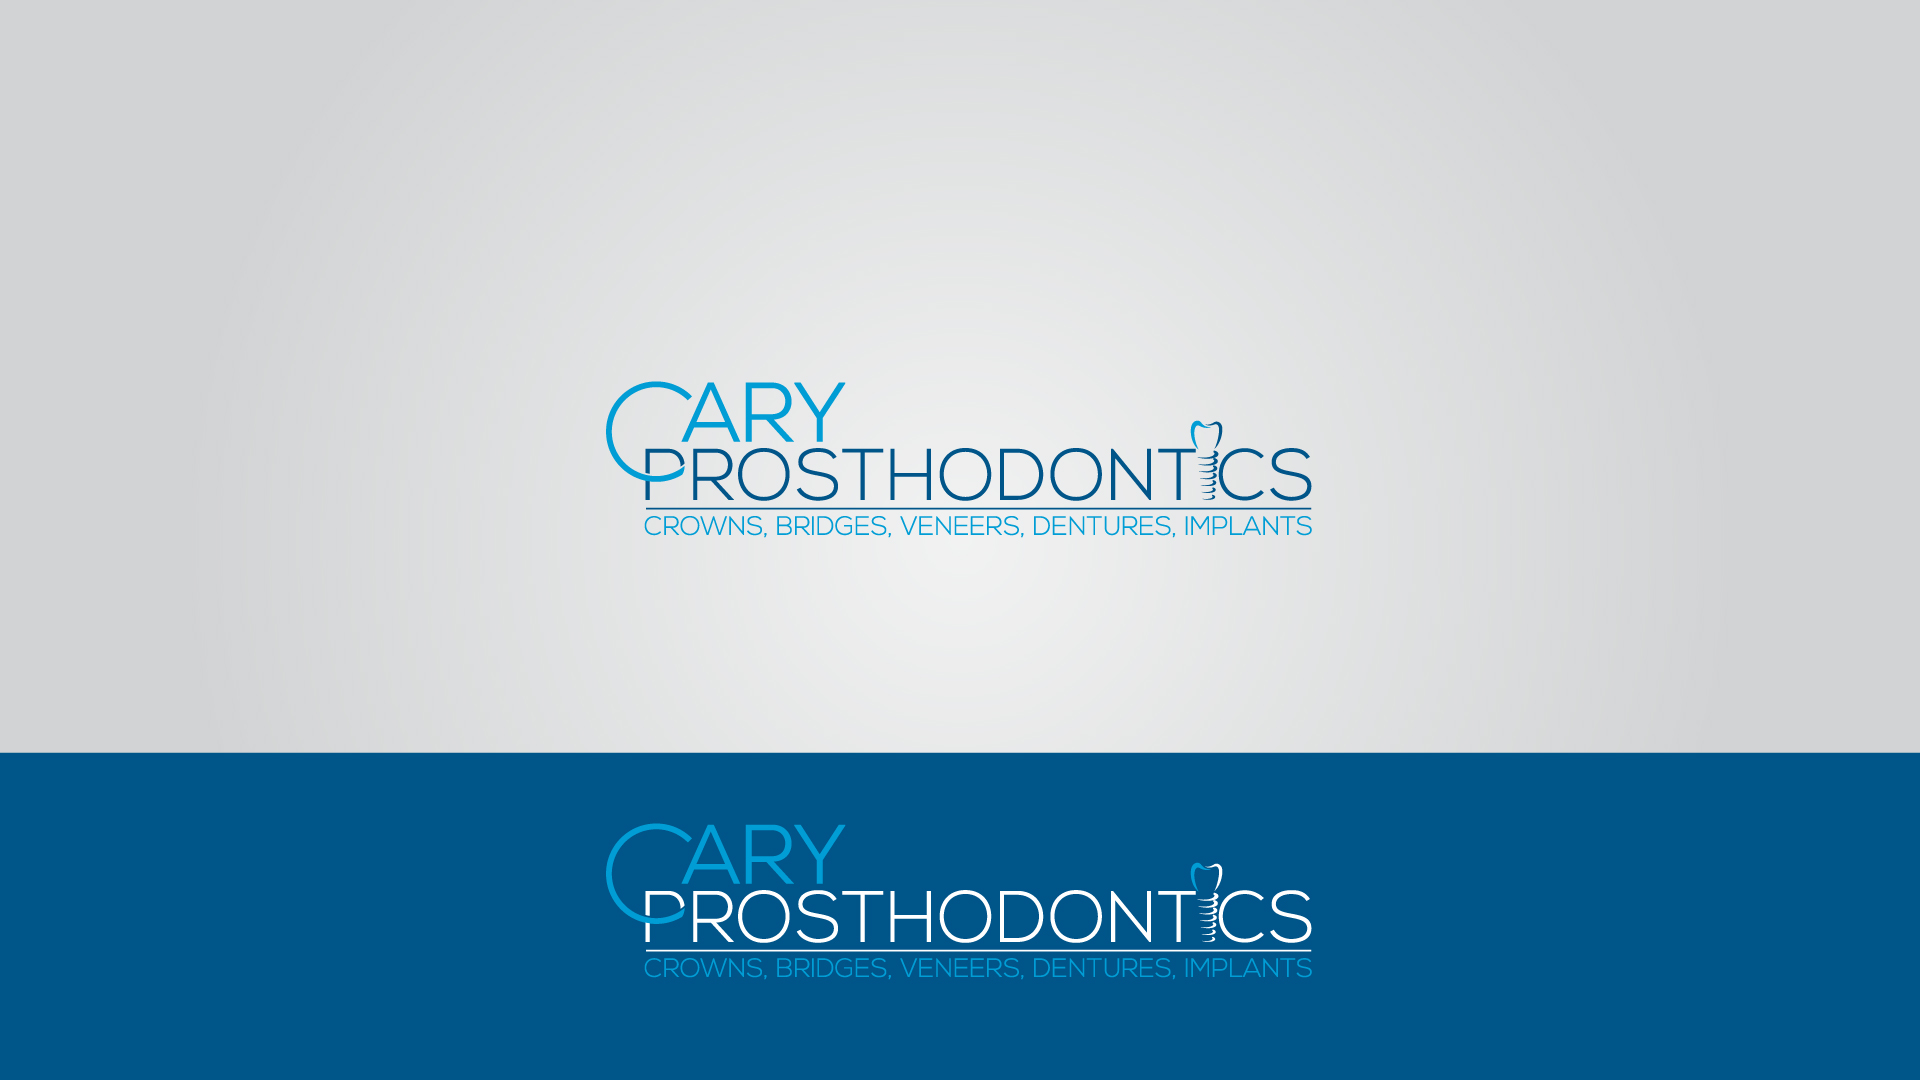 Logo Design by MD SHOHIDUL ISLAM - Entry No. 225 in the Logo Design Contest Cary Prosthodontics Logo Design.